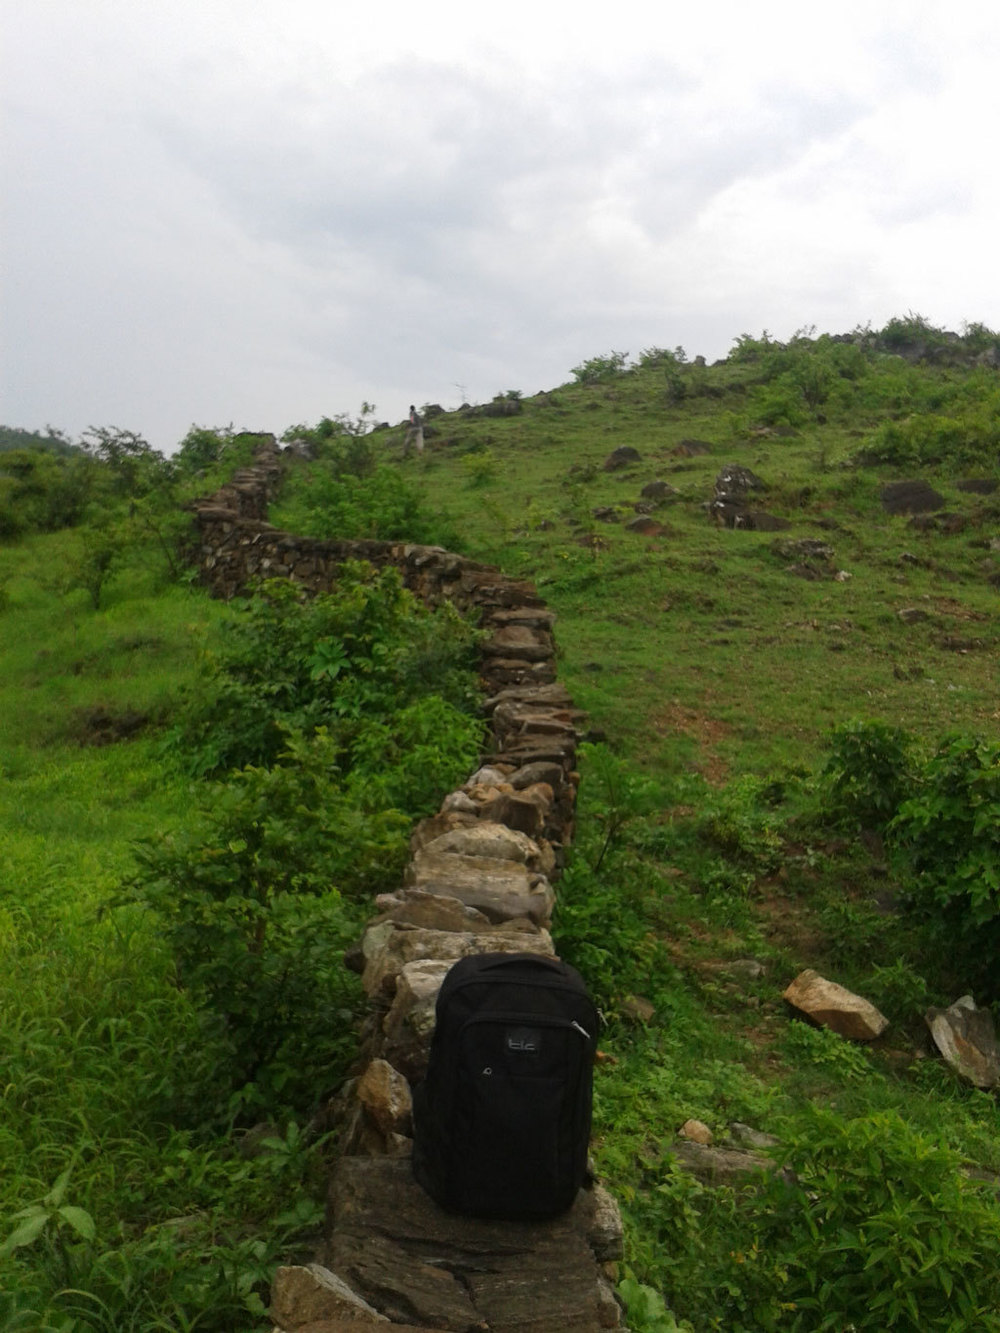 Kumbhalgarh countryside Photo credit: Prashant Prakash